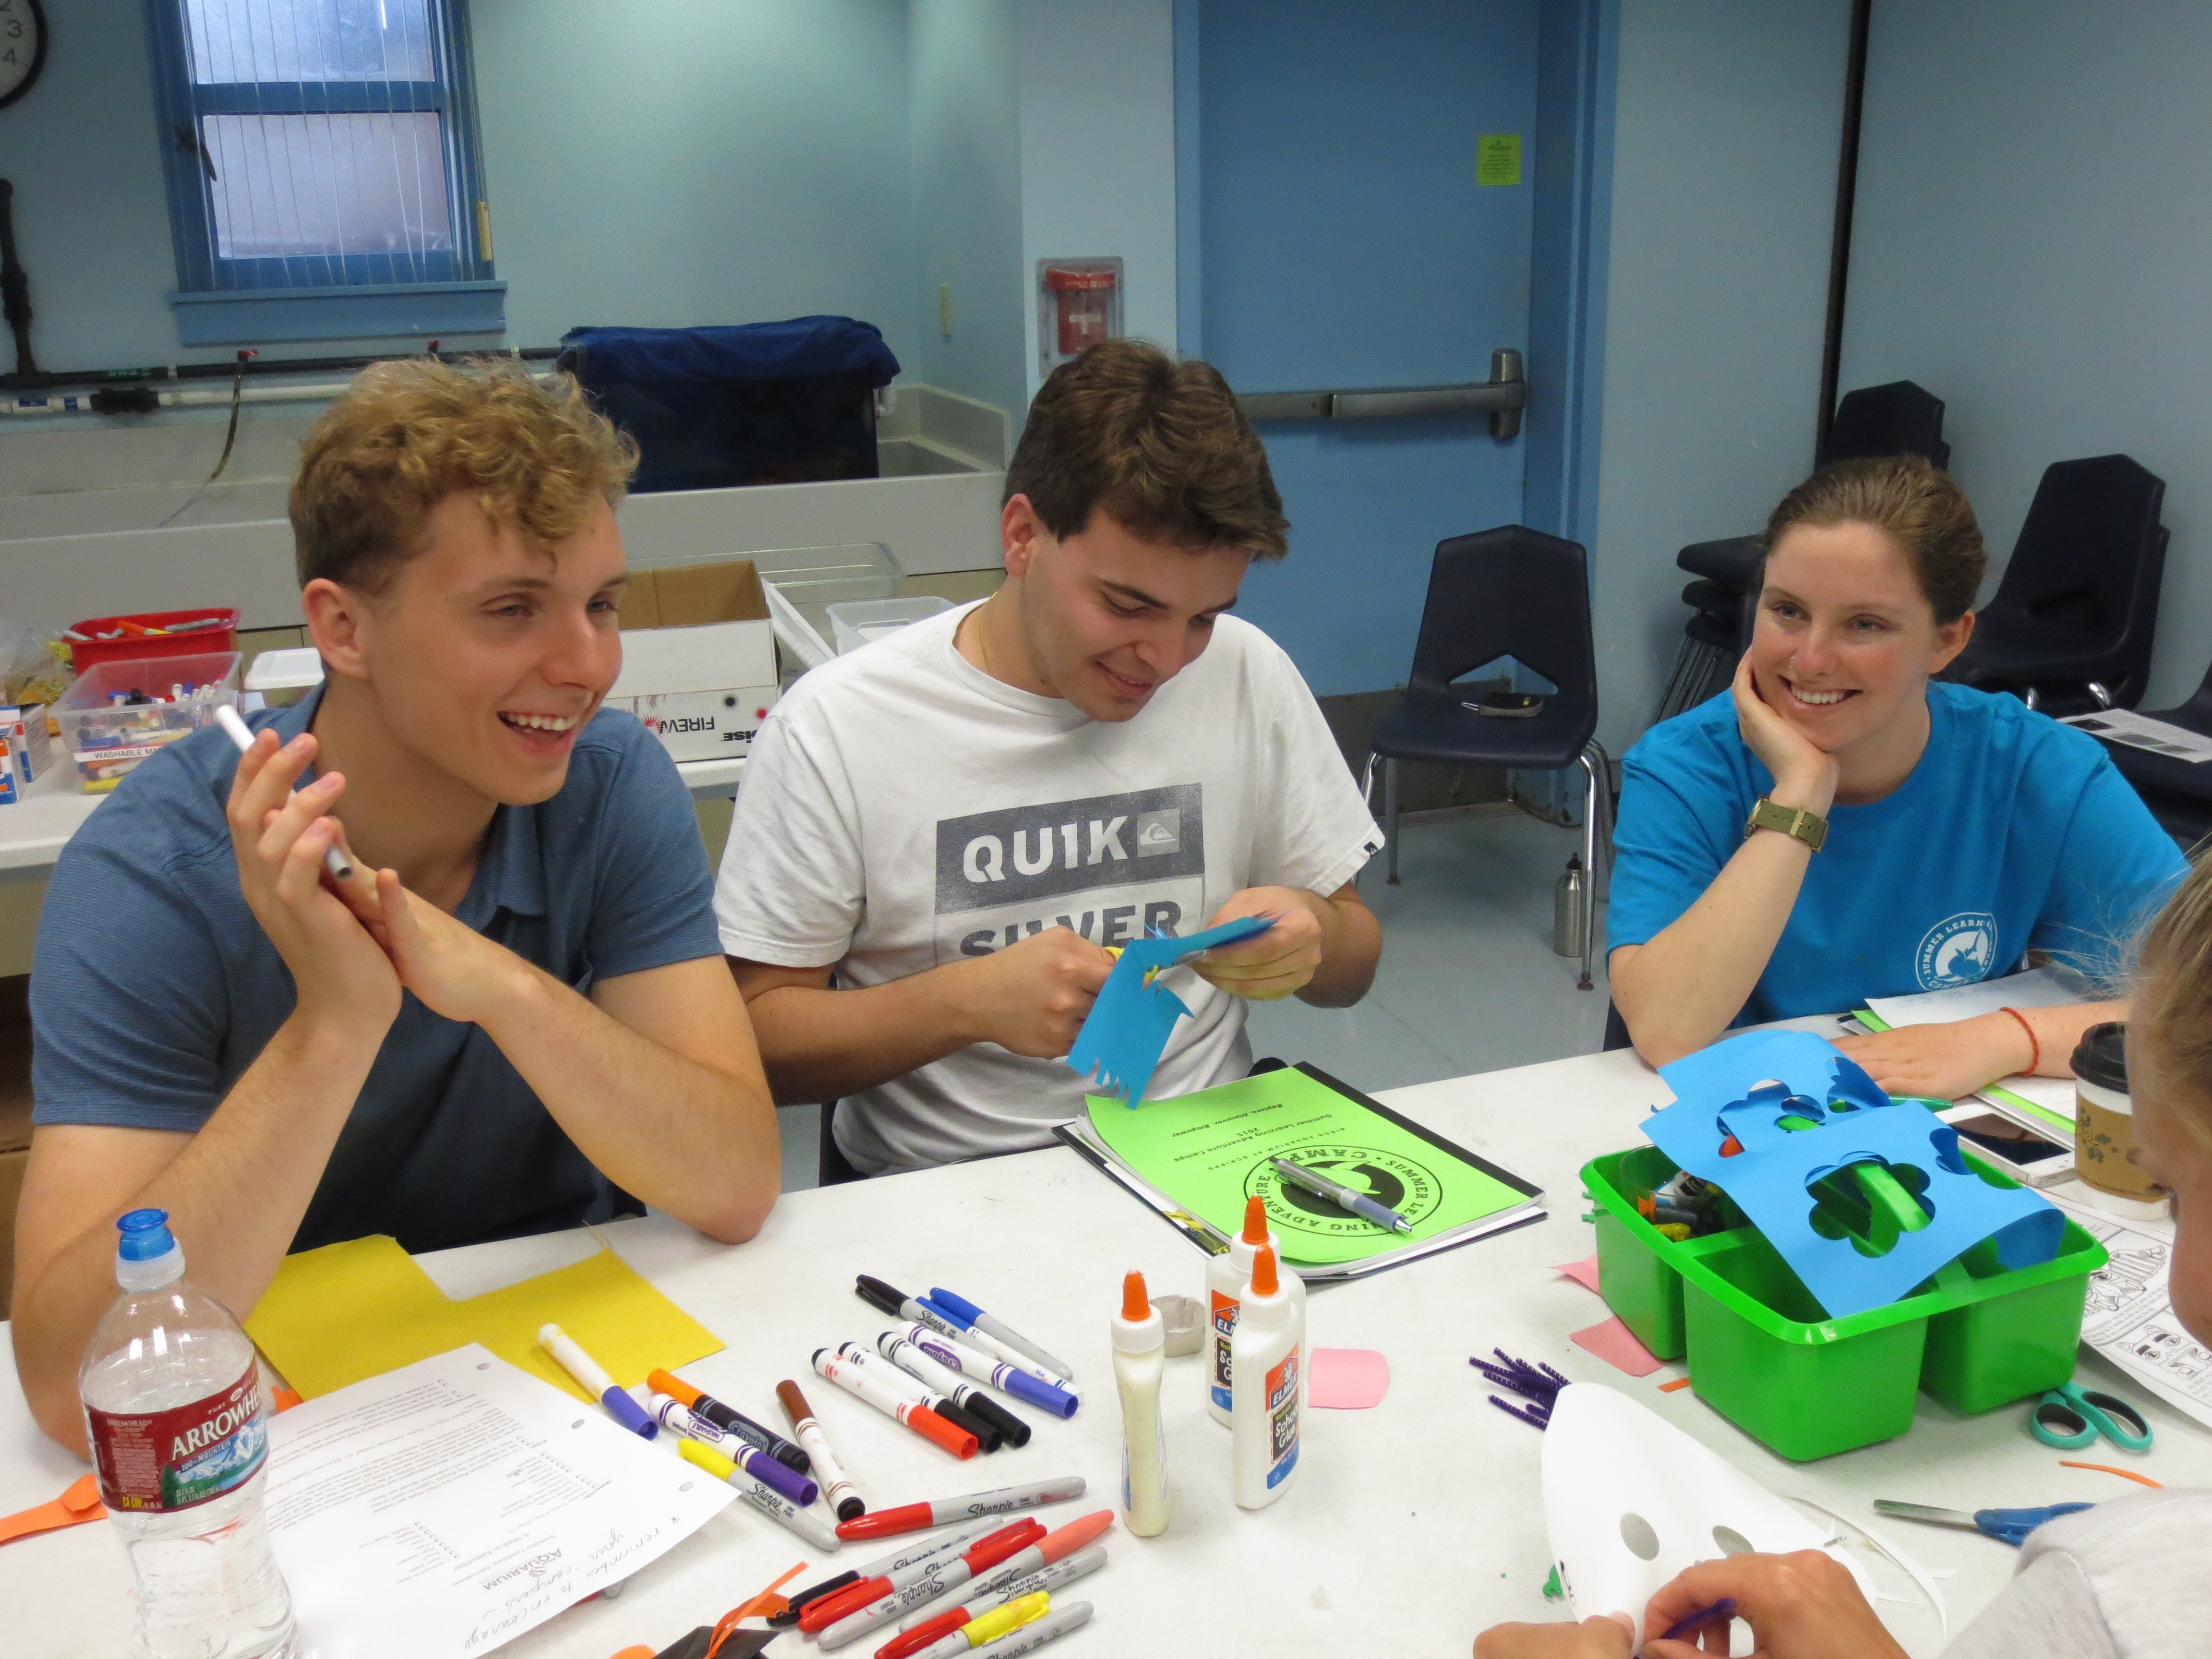 Summer Learning interns get into the crafting spirit as they help Birch Aquarium educators prep for the day's camp lesson.